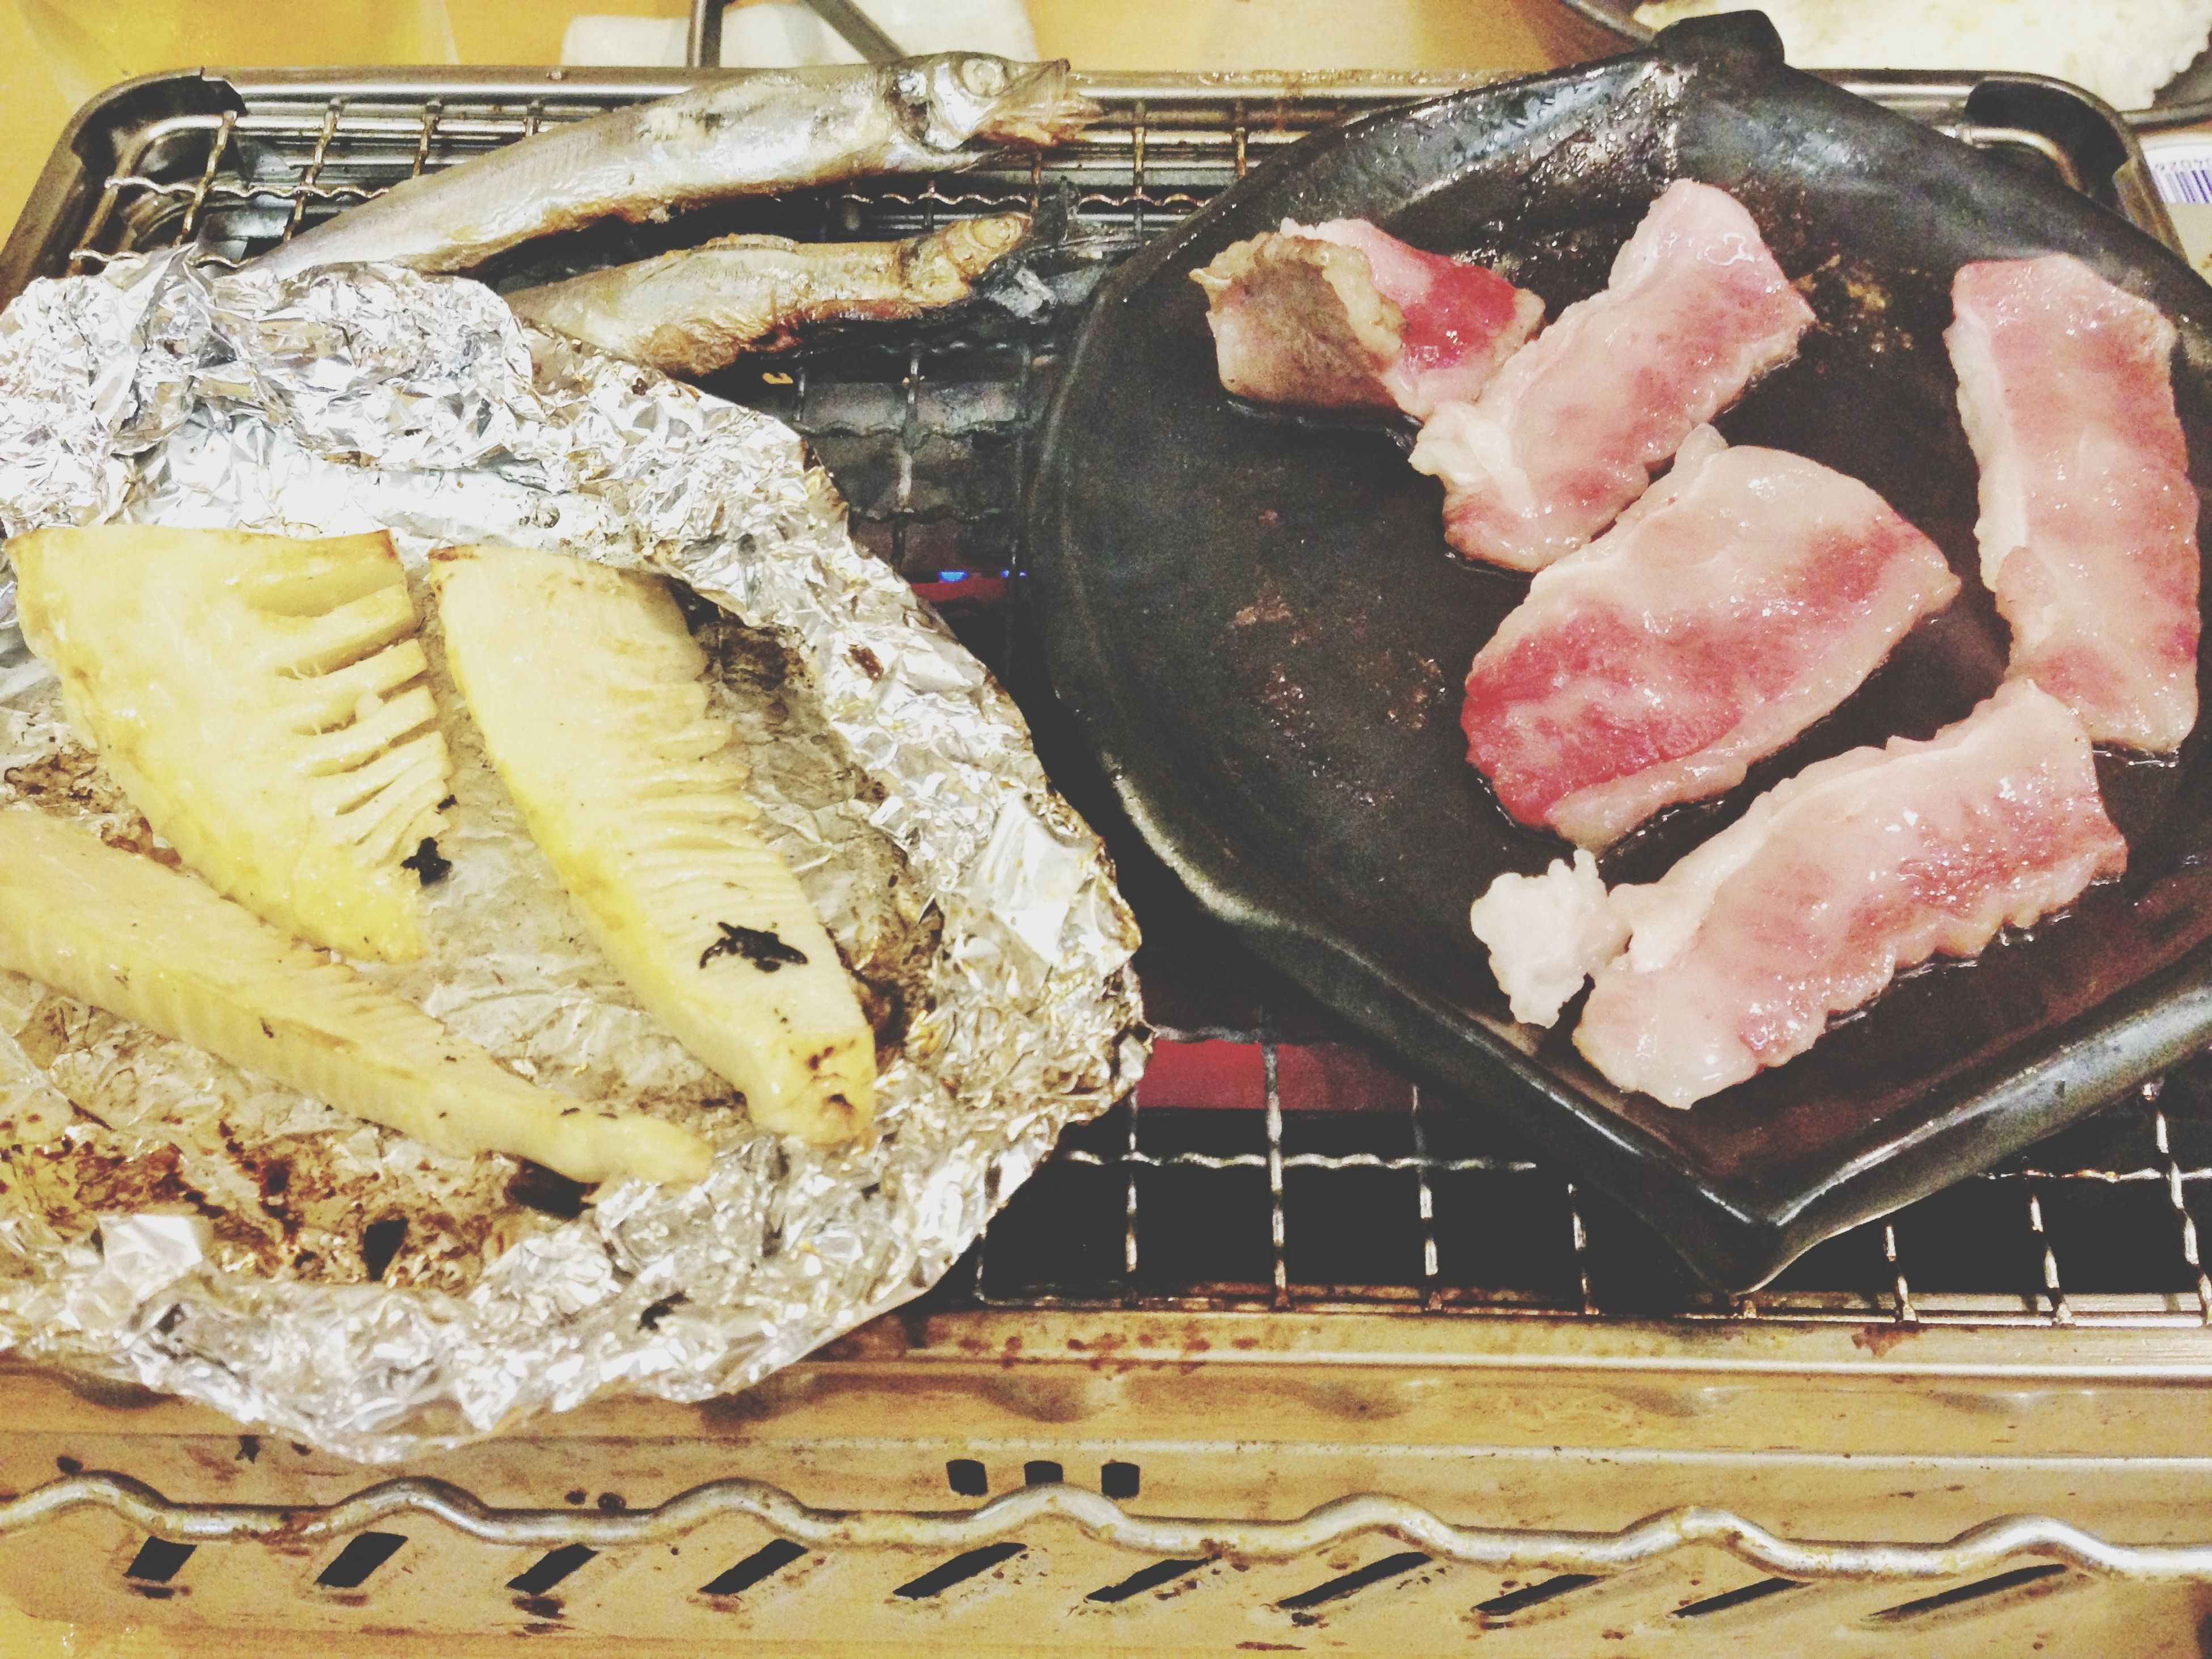 food and drink, food, freshness, indoors, still life, unhealthy eating, ready-to-eat, sweet food, indulgence, baked, dessert, meat, close-up, temptation, high angle view, barbecue grill, no people, preparation, homemade